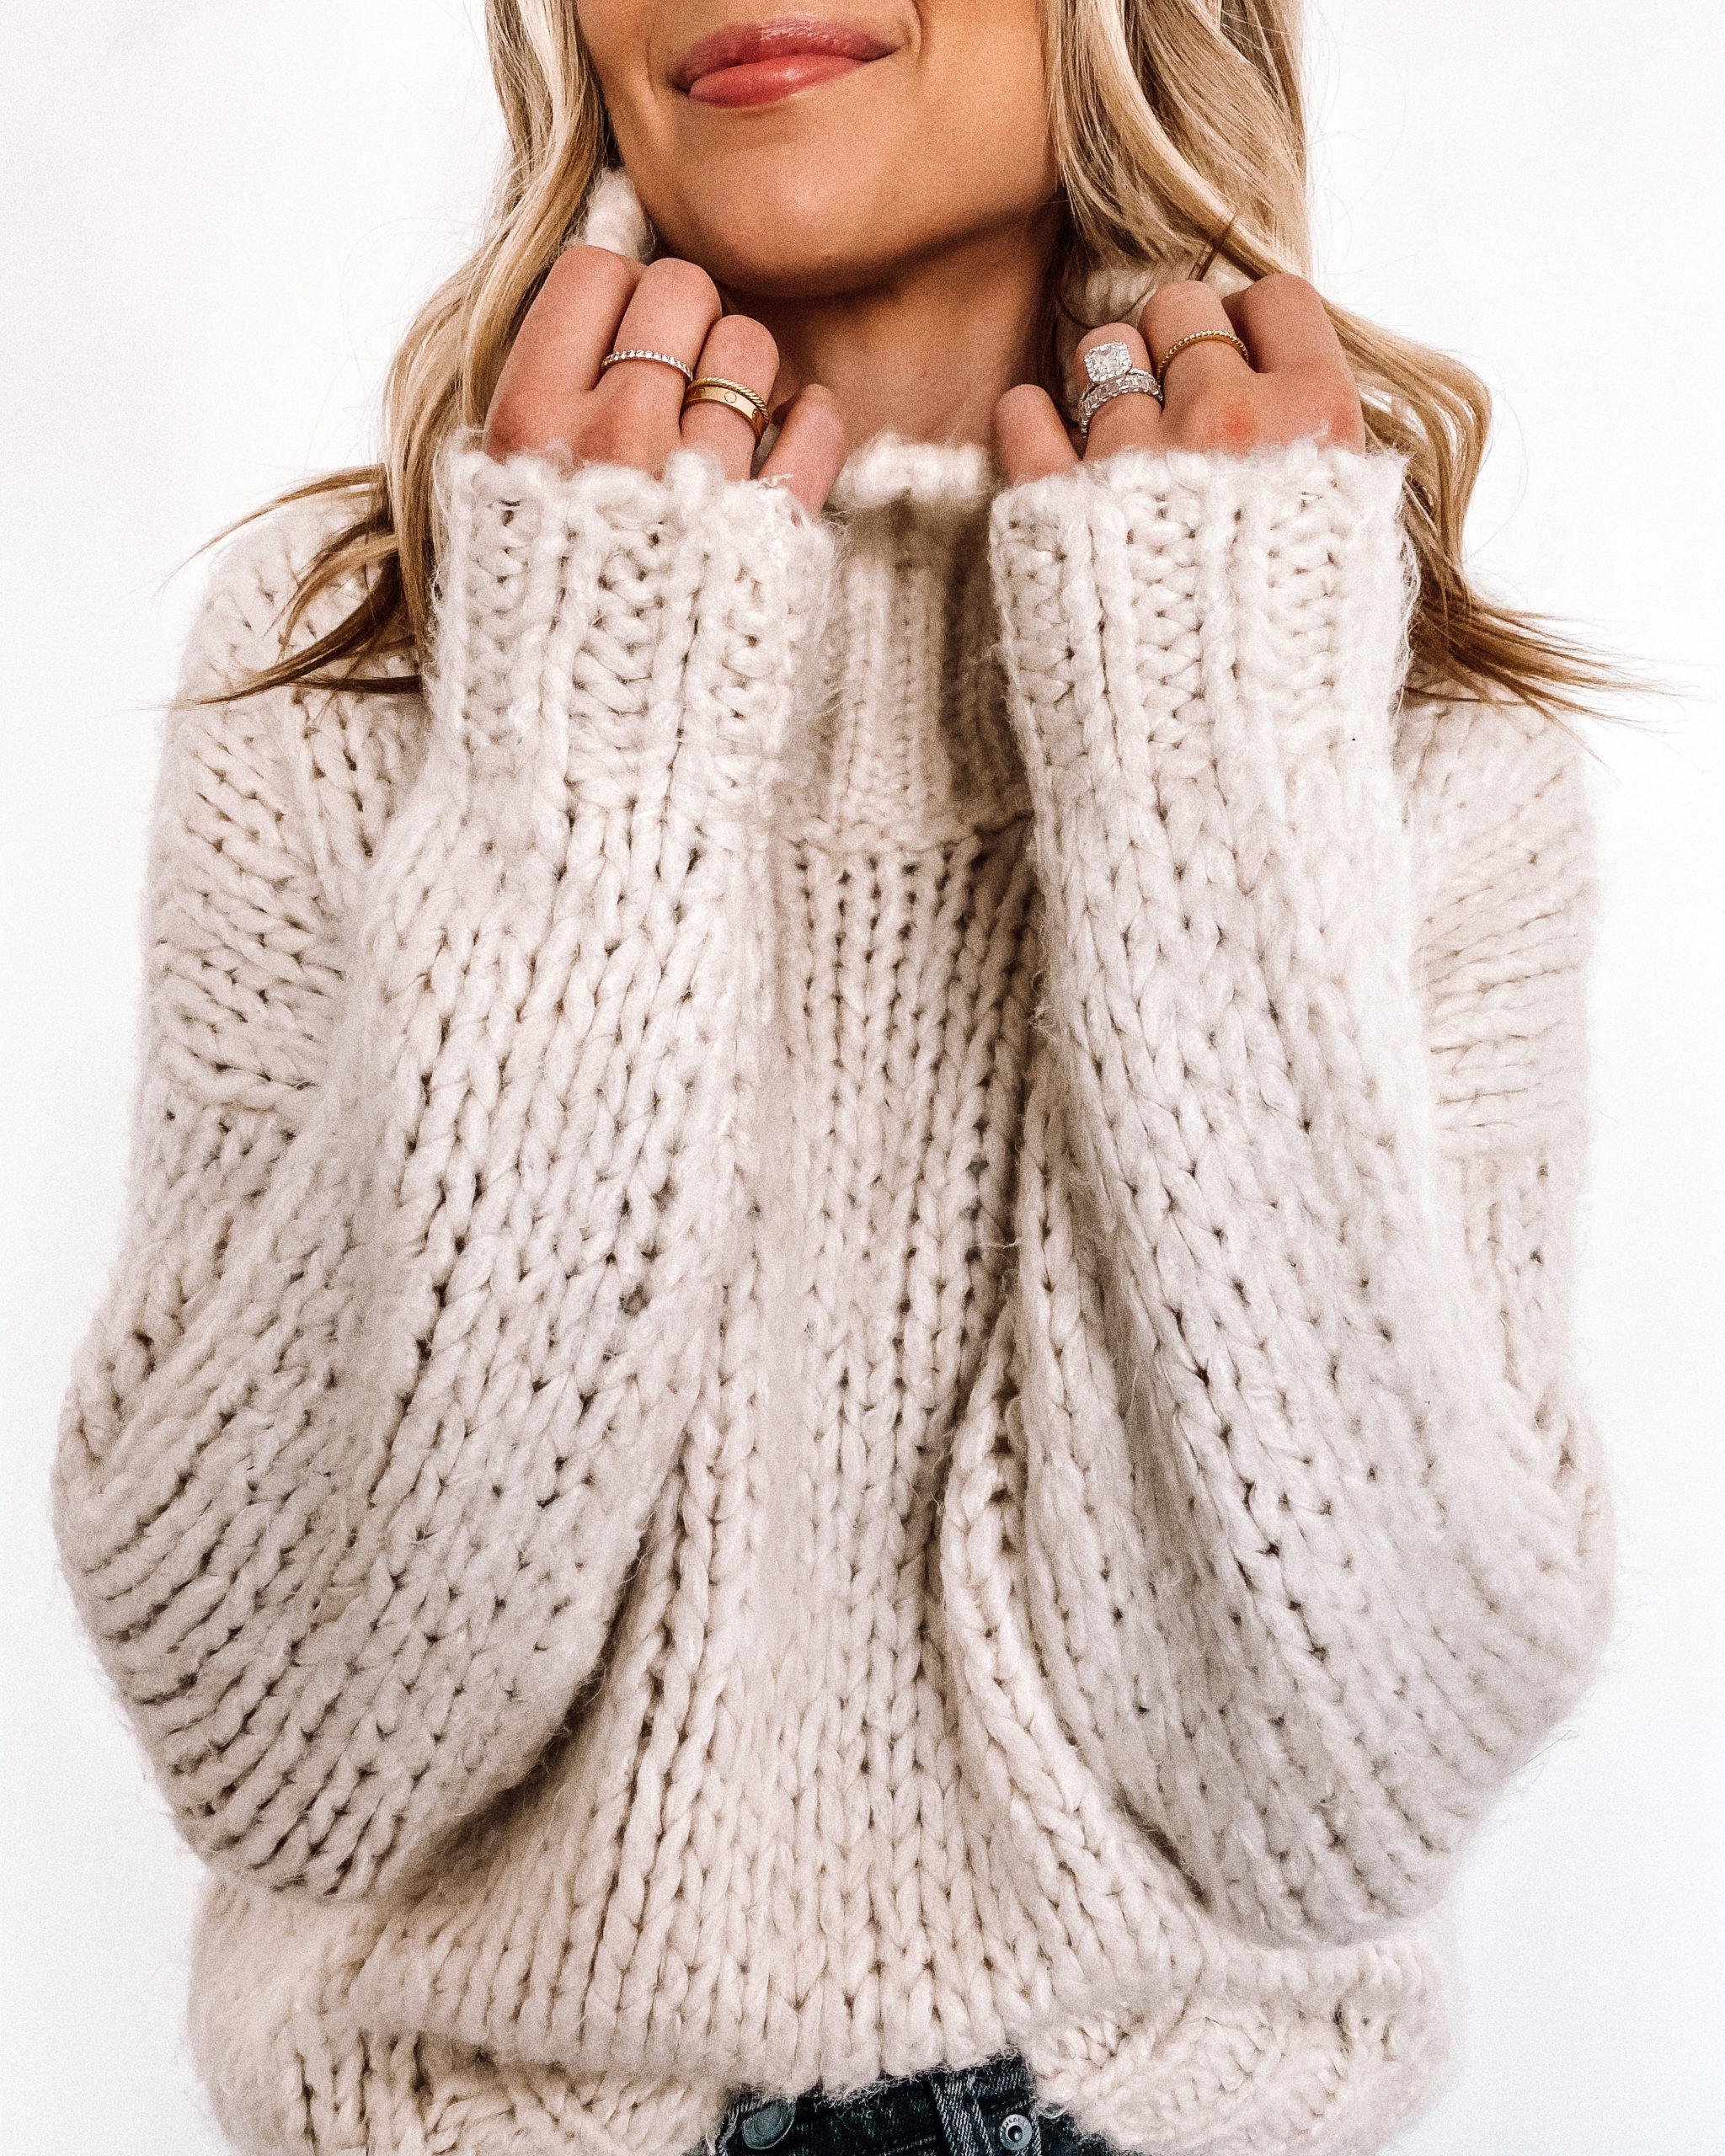 Fashion Jackson Wearing Topshop Chunky Ivory Sweater Dainty Golde Jewelry Wedding Rings